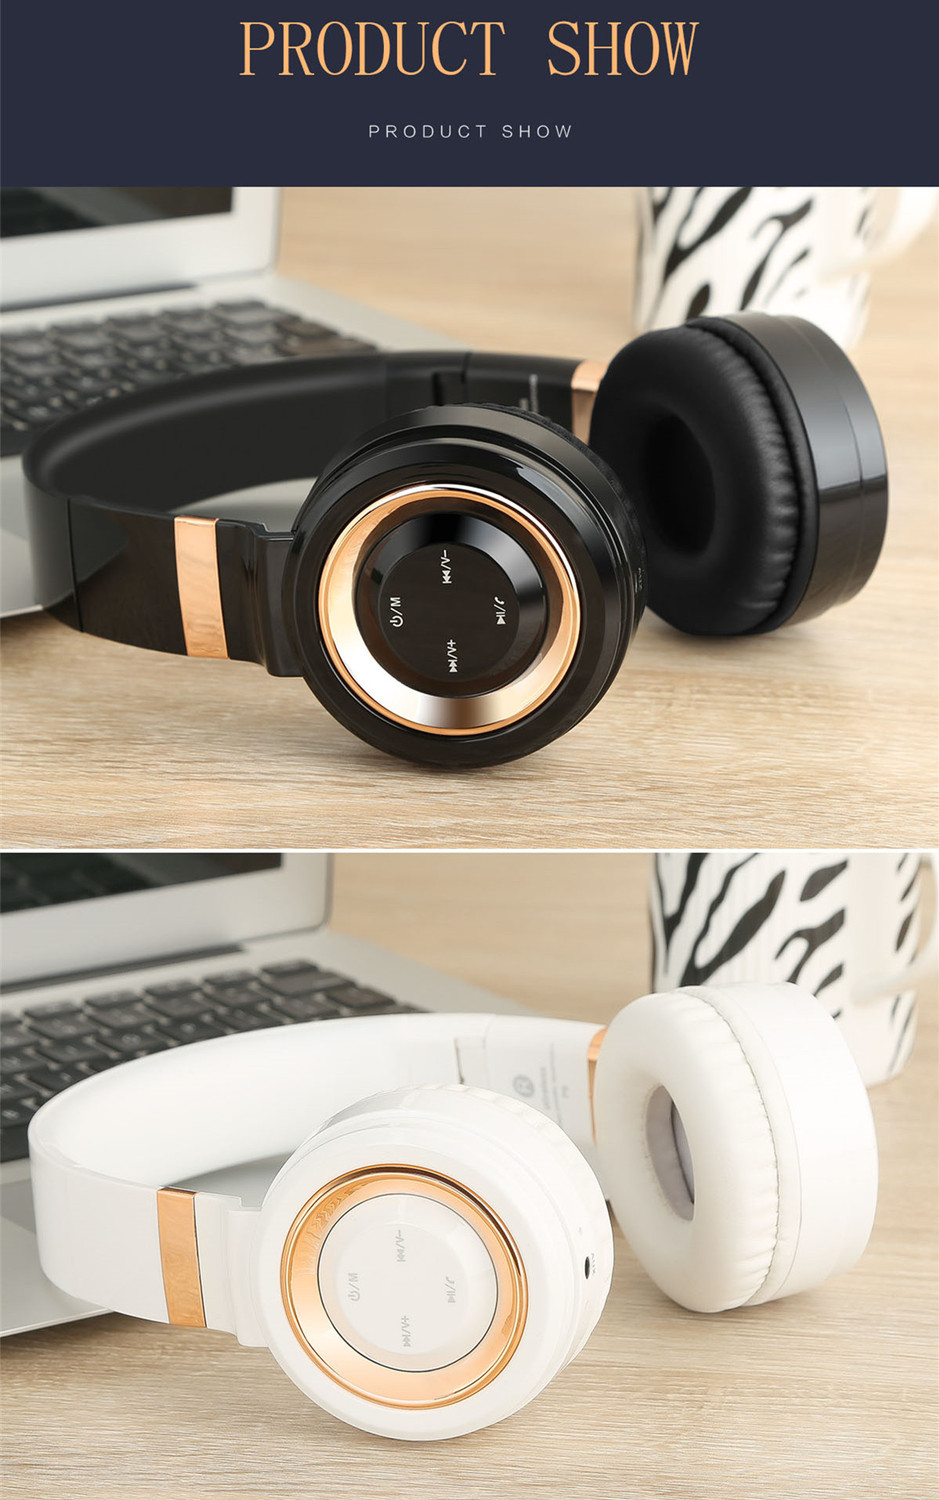 Sound Intone P6 S Bluetooth Headsets Stereo wireless Headphones With MIC Support FM Radio TF Card Earphone For iPhone Xiaomi PC 20